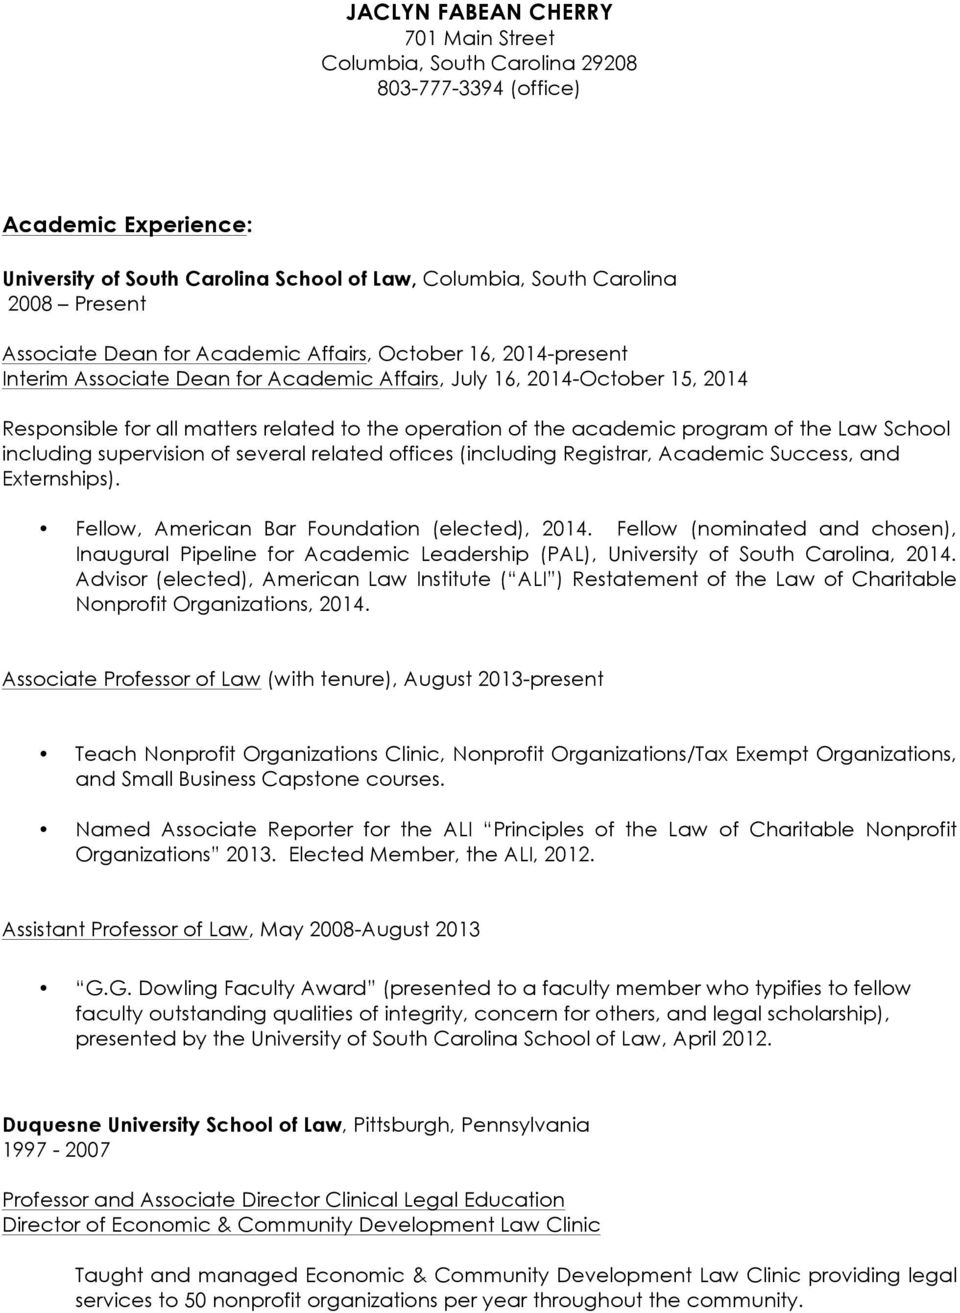 academic program of the Law School including supervision of several related offices (including Registrar, Academic Success, and Externships). Fellow, American Bar Foundation (elected), 2014.